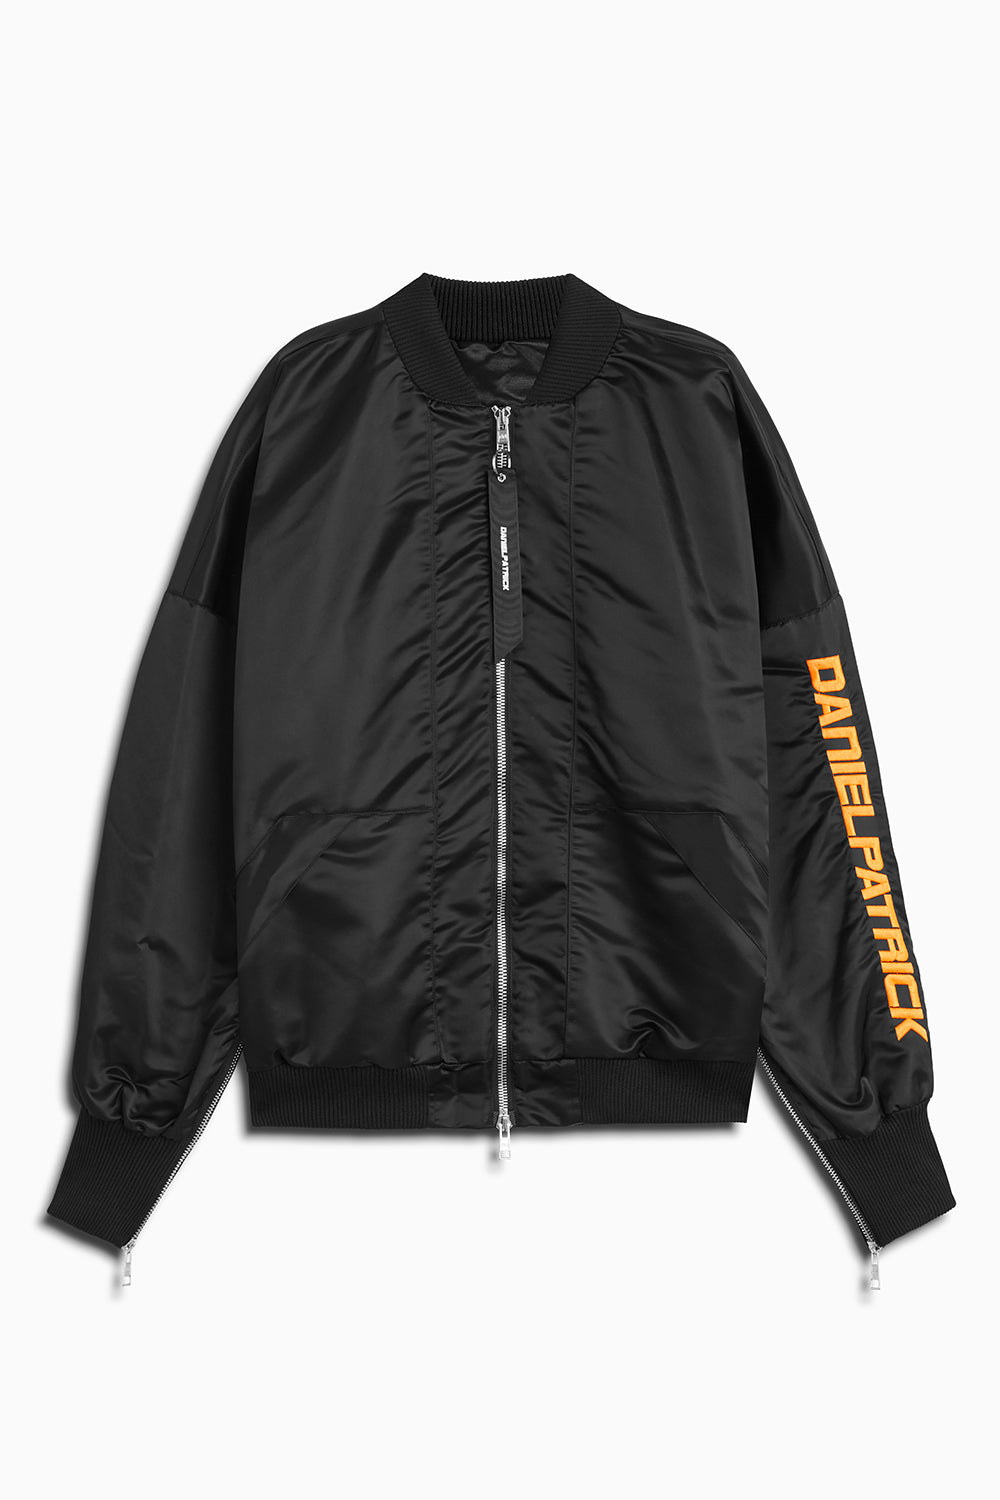 DP embroidered sleeve bomber in black/neon orange